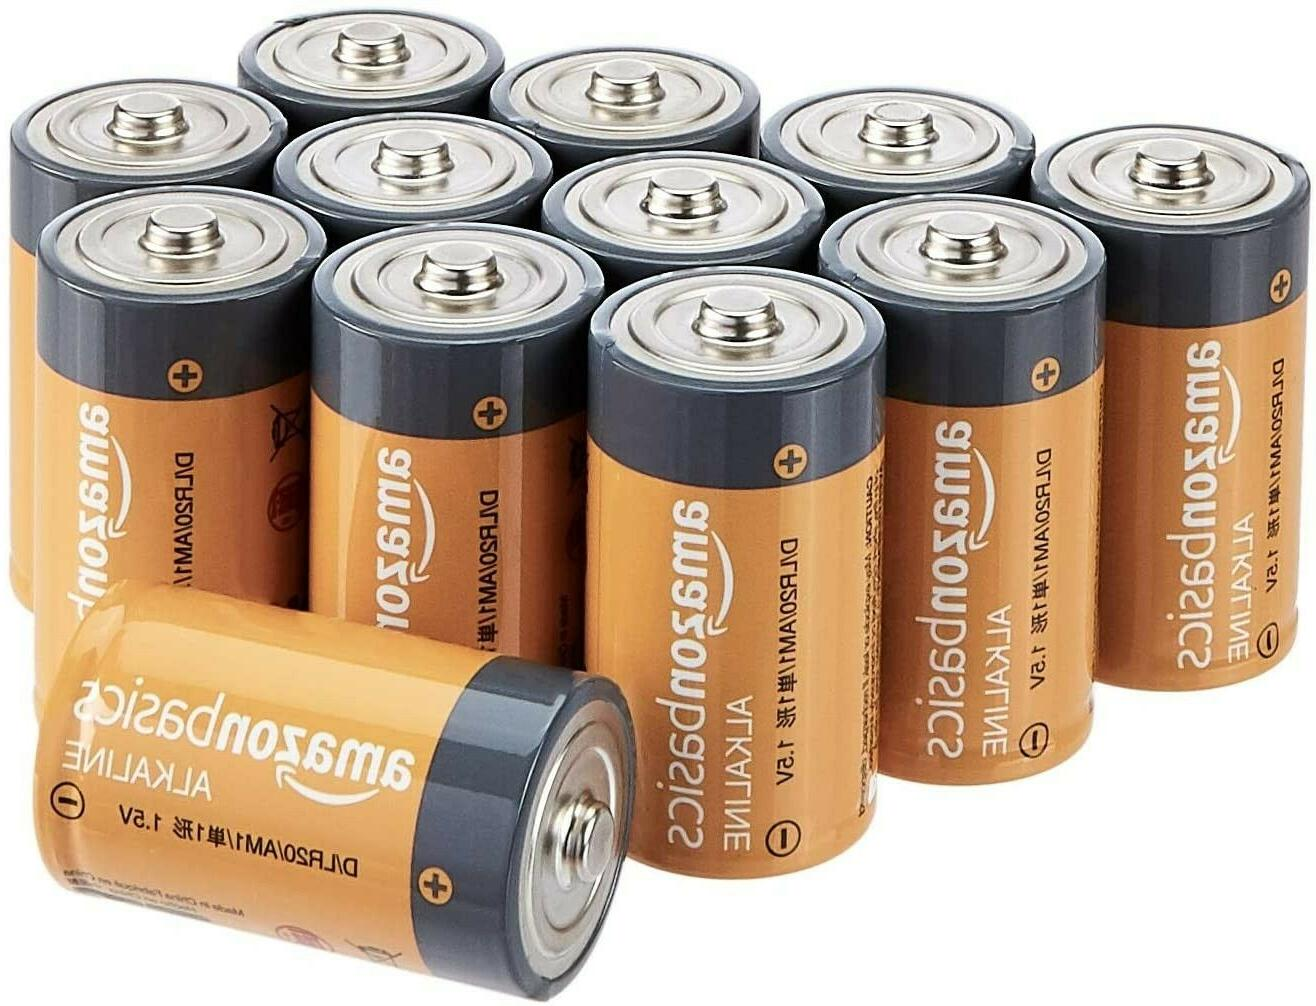 d cell everyday alkaline batteries 12 pack